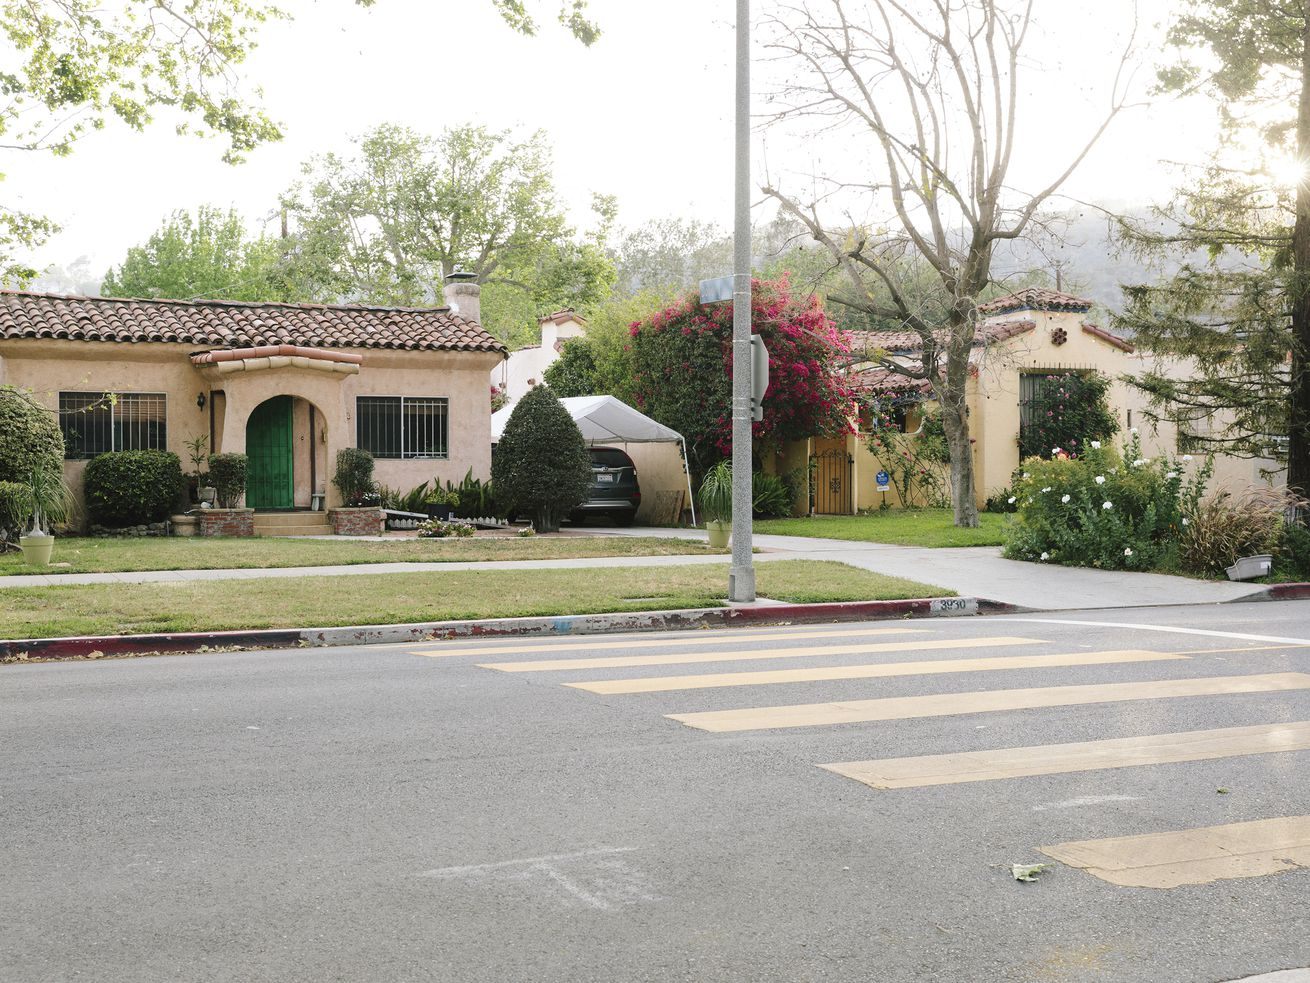 The median price of a home in Los Angeles County was $545,540 in the first three months of 2018.